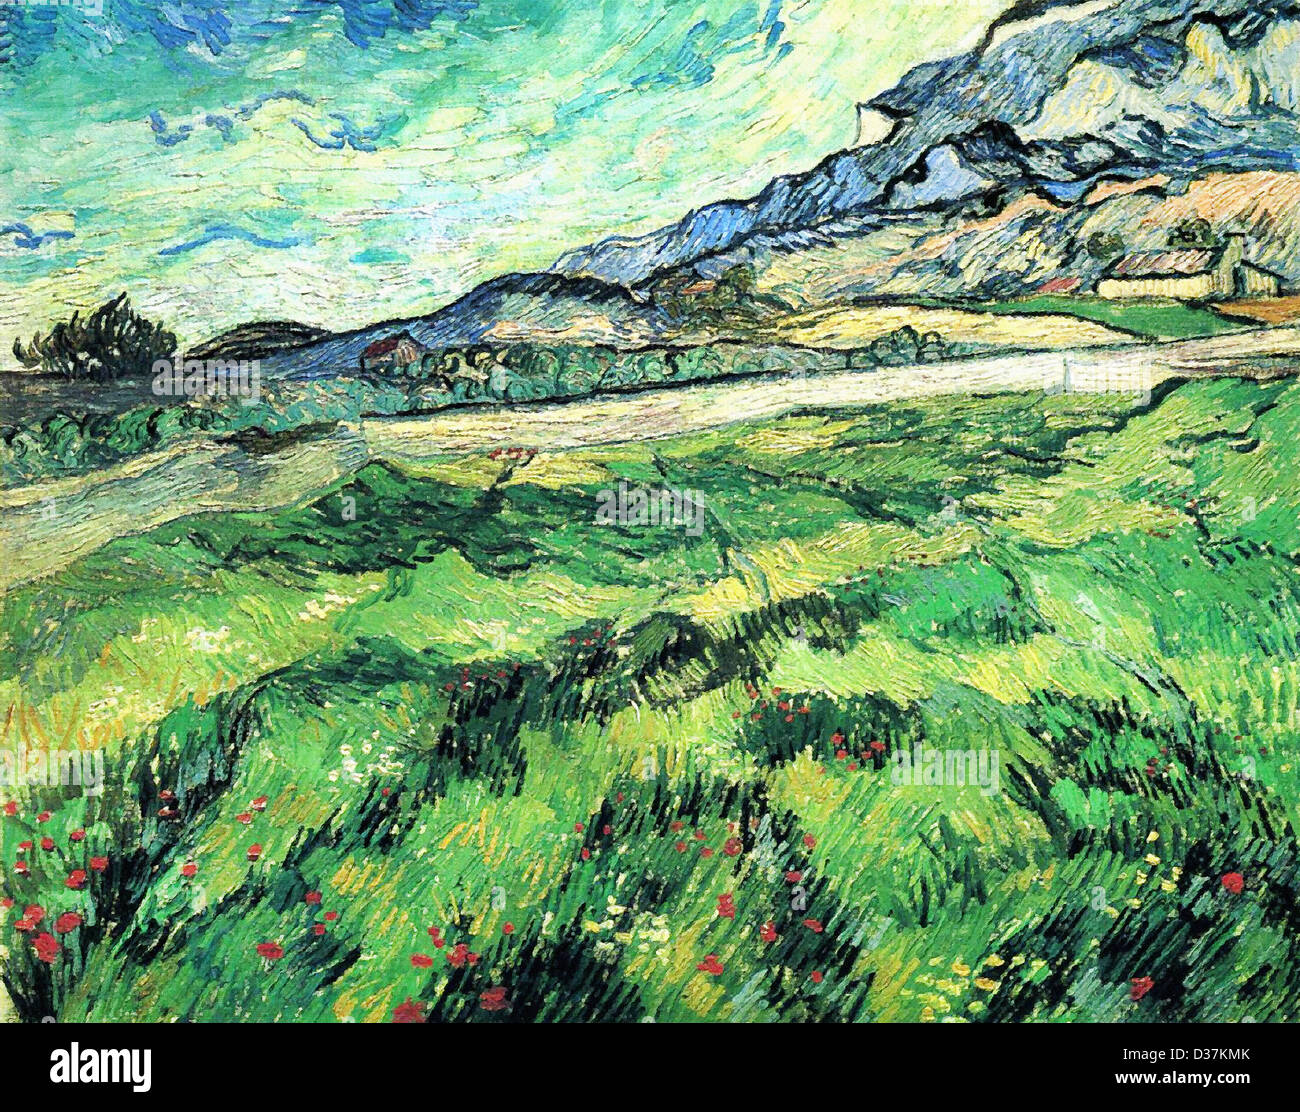 Vincent van Gogh, The Green Wheatfield behind the Asylum. 1889. Post-Impressionism. Oil on canvas. - Stock Image